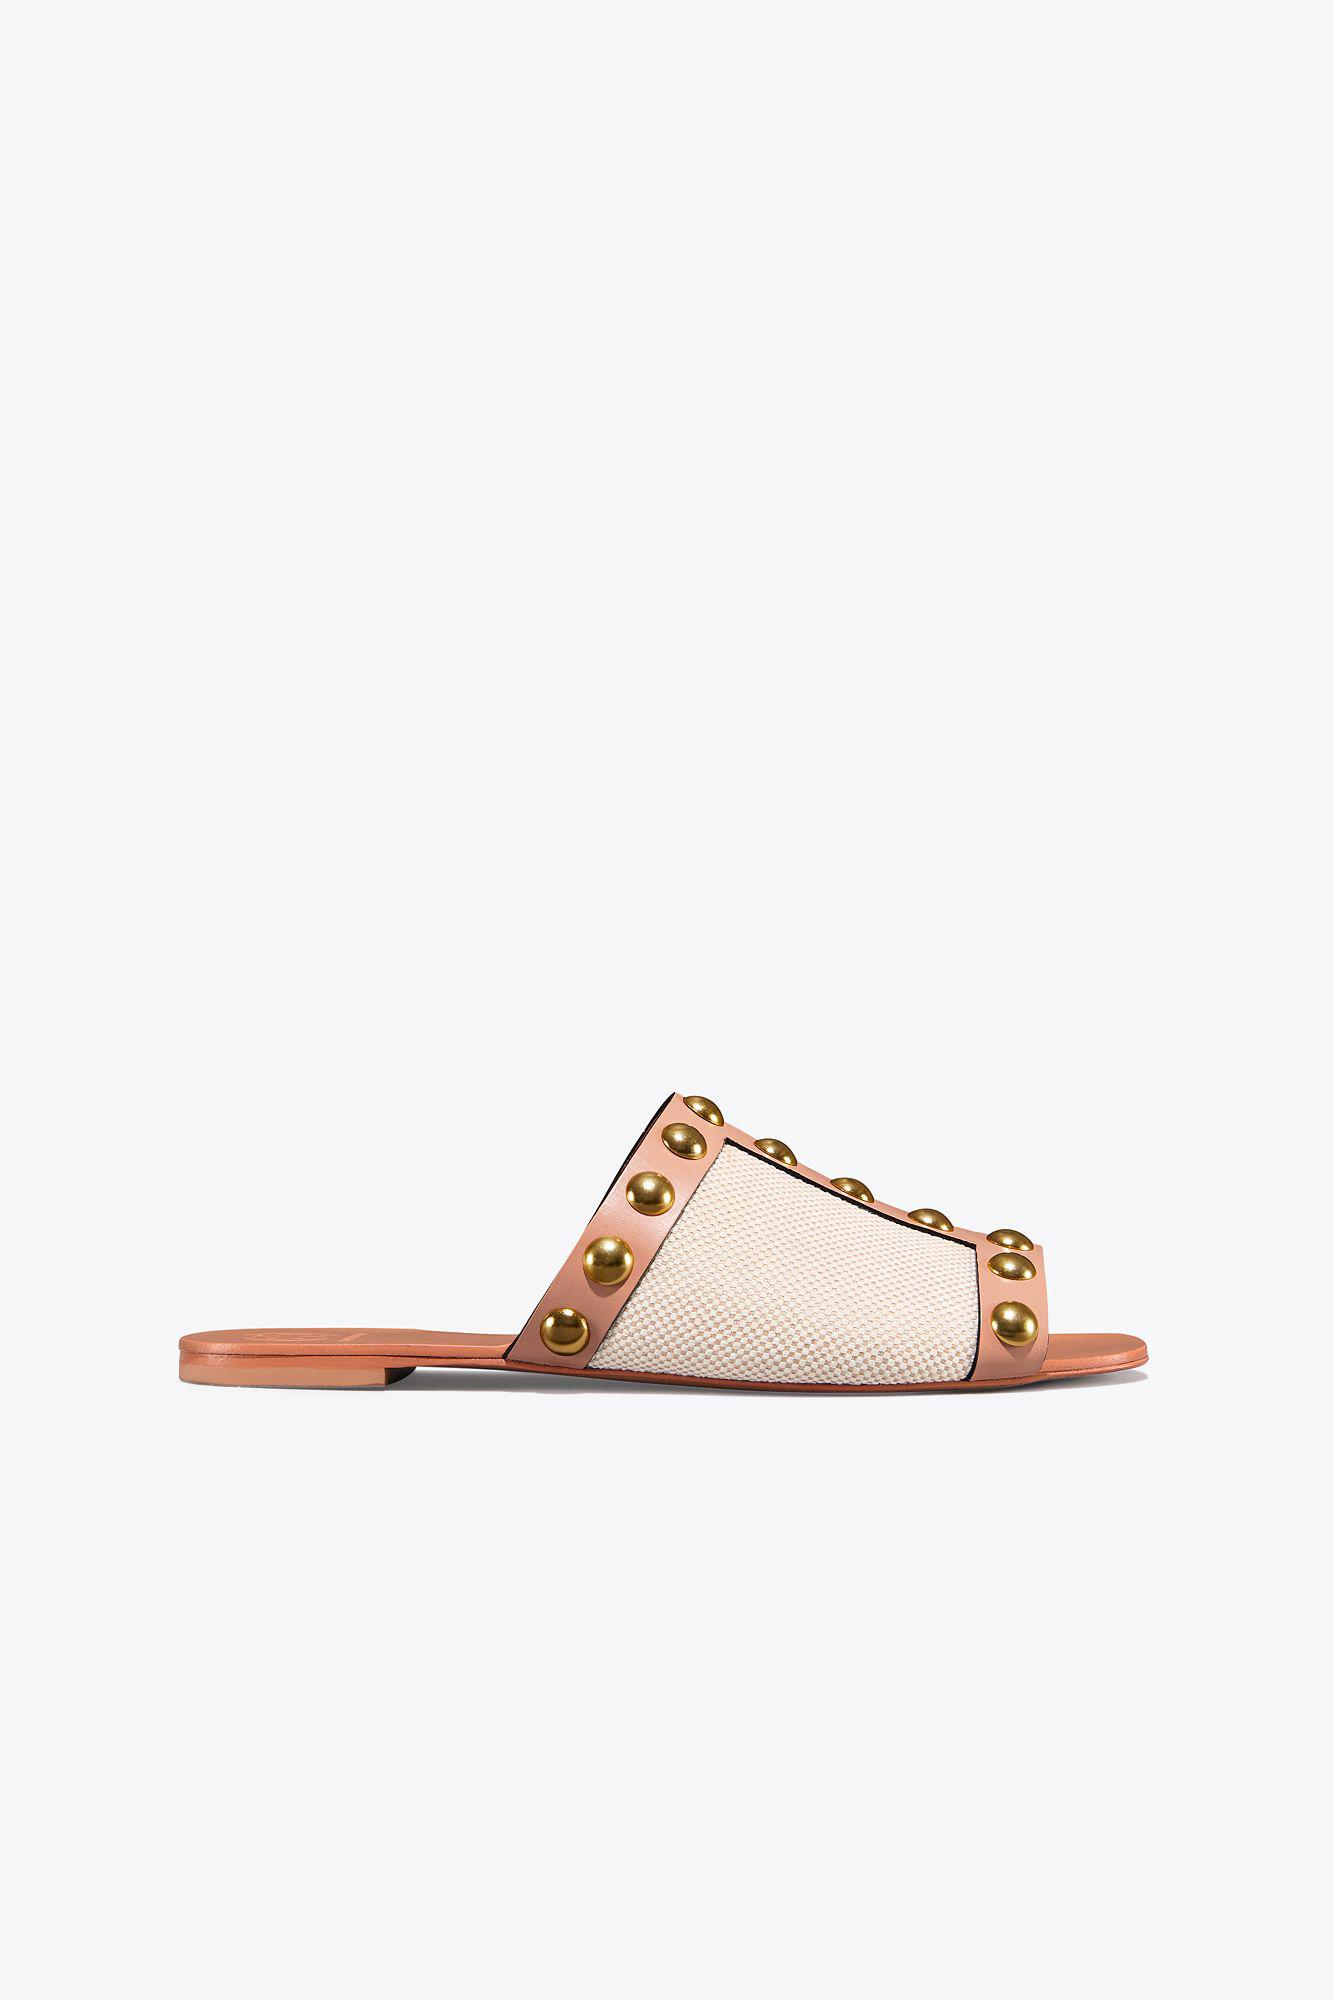 aab69bd8d113 Tory Burch Blythe Slide in Natural - Lyst